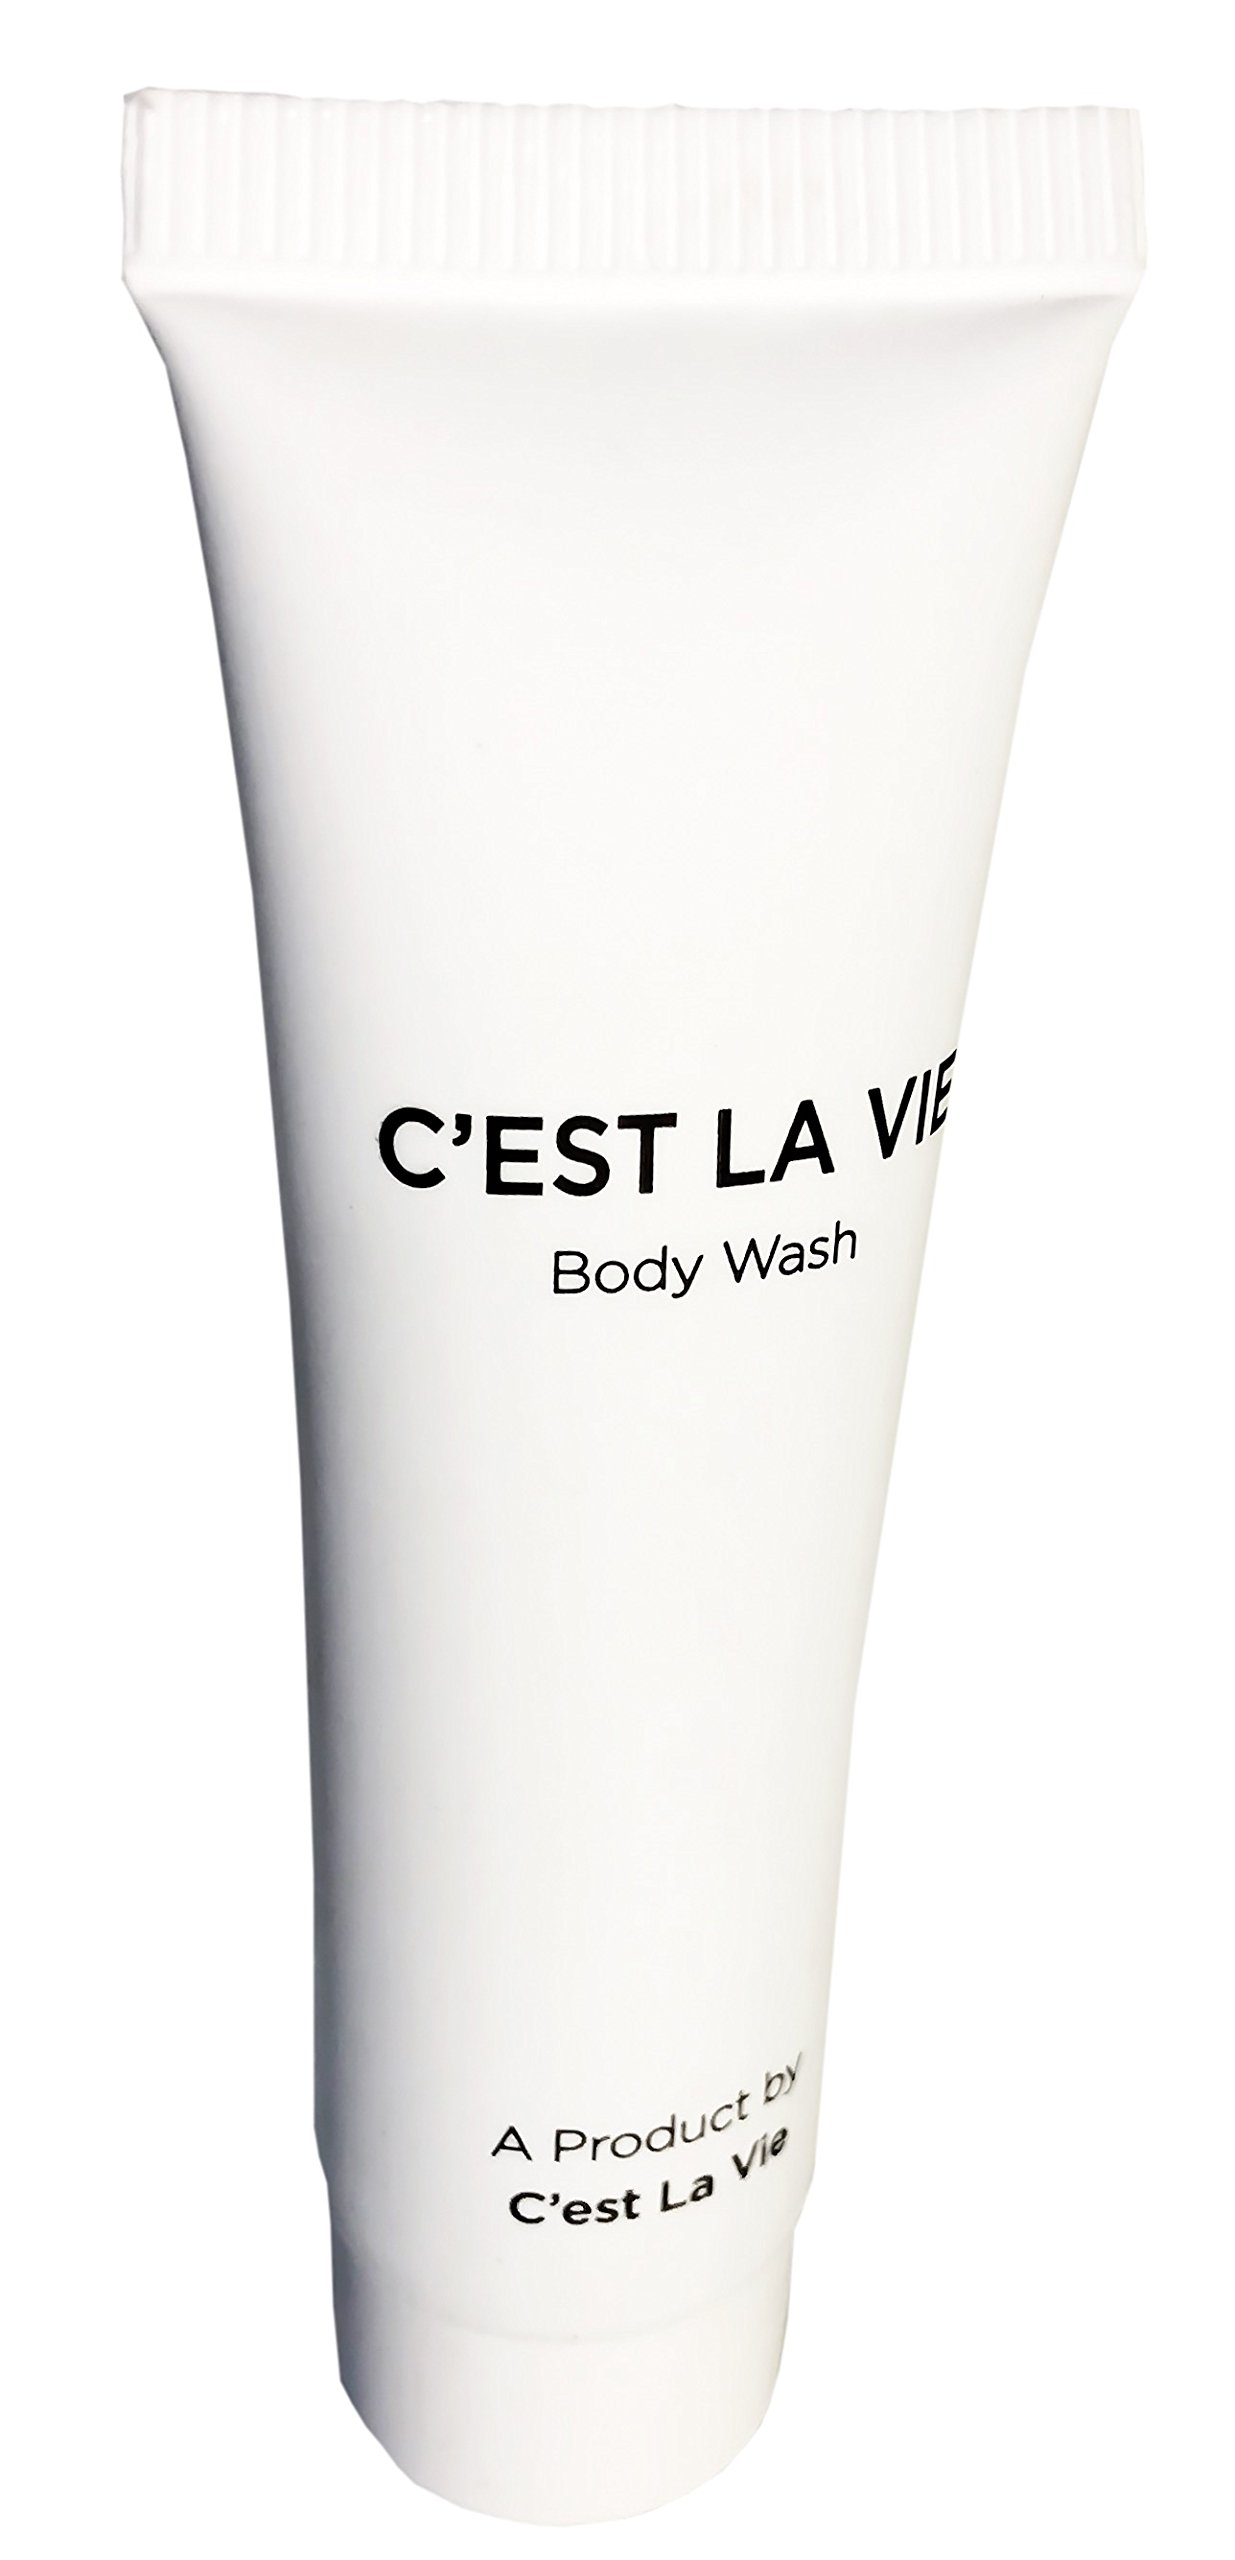 50 Bulk Pack - Fig & Olive Luxury Body Wash By C'EST LA VIE - 22ml / 0.75 fl oz - Travel Guest & Hotel Amenities - Individual Clean White Tubes in Eco Responsible Packaging. Paraben & Cruelty Free  by C'est La Vie (Image #2)